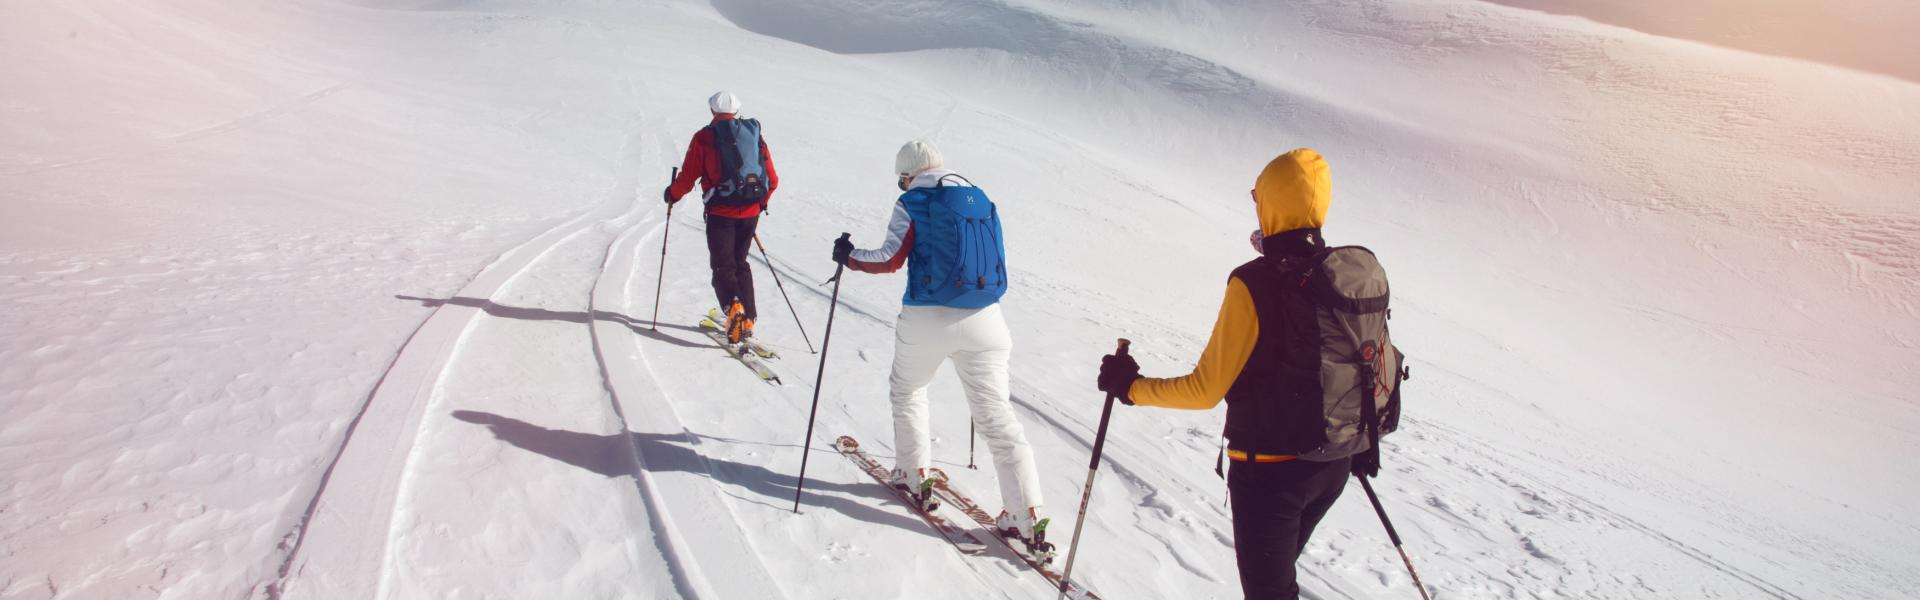 Group of ski-tourers ascending the Gandhorn at Binntal, Valais